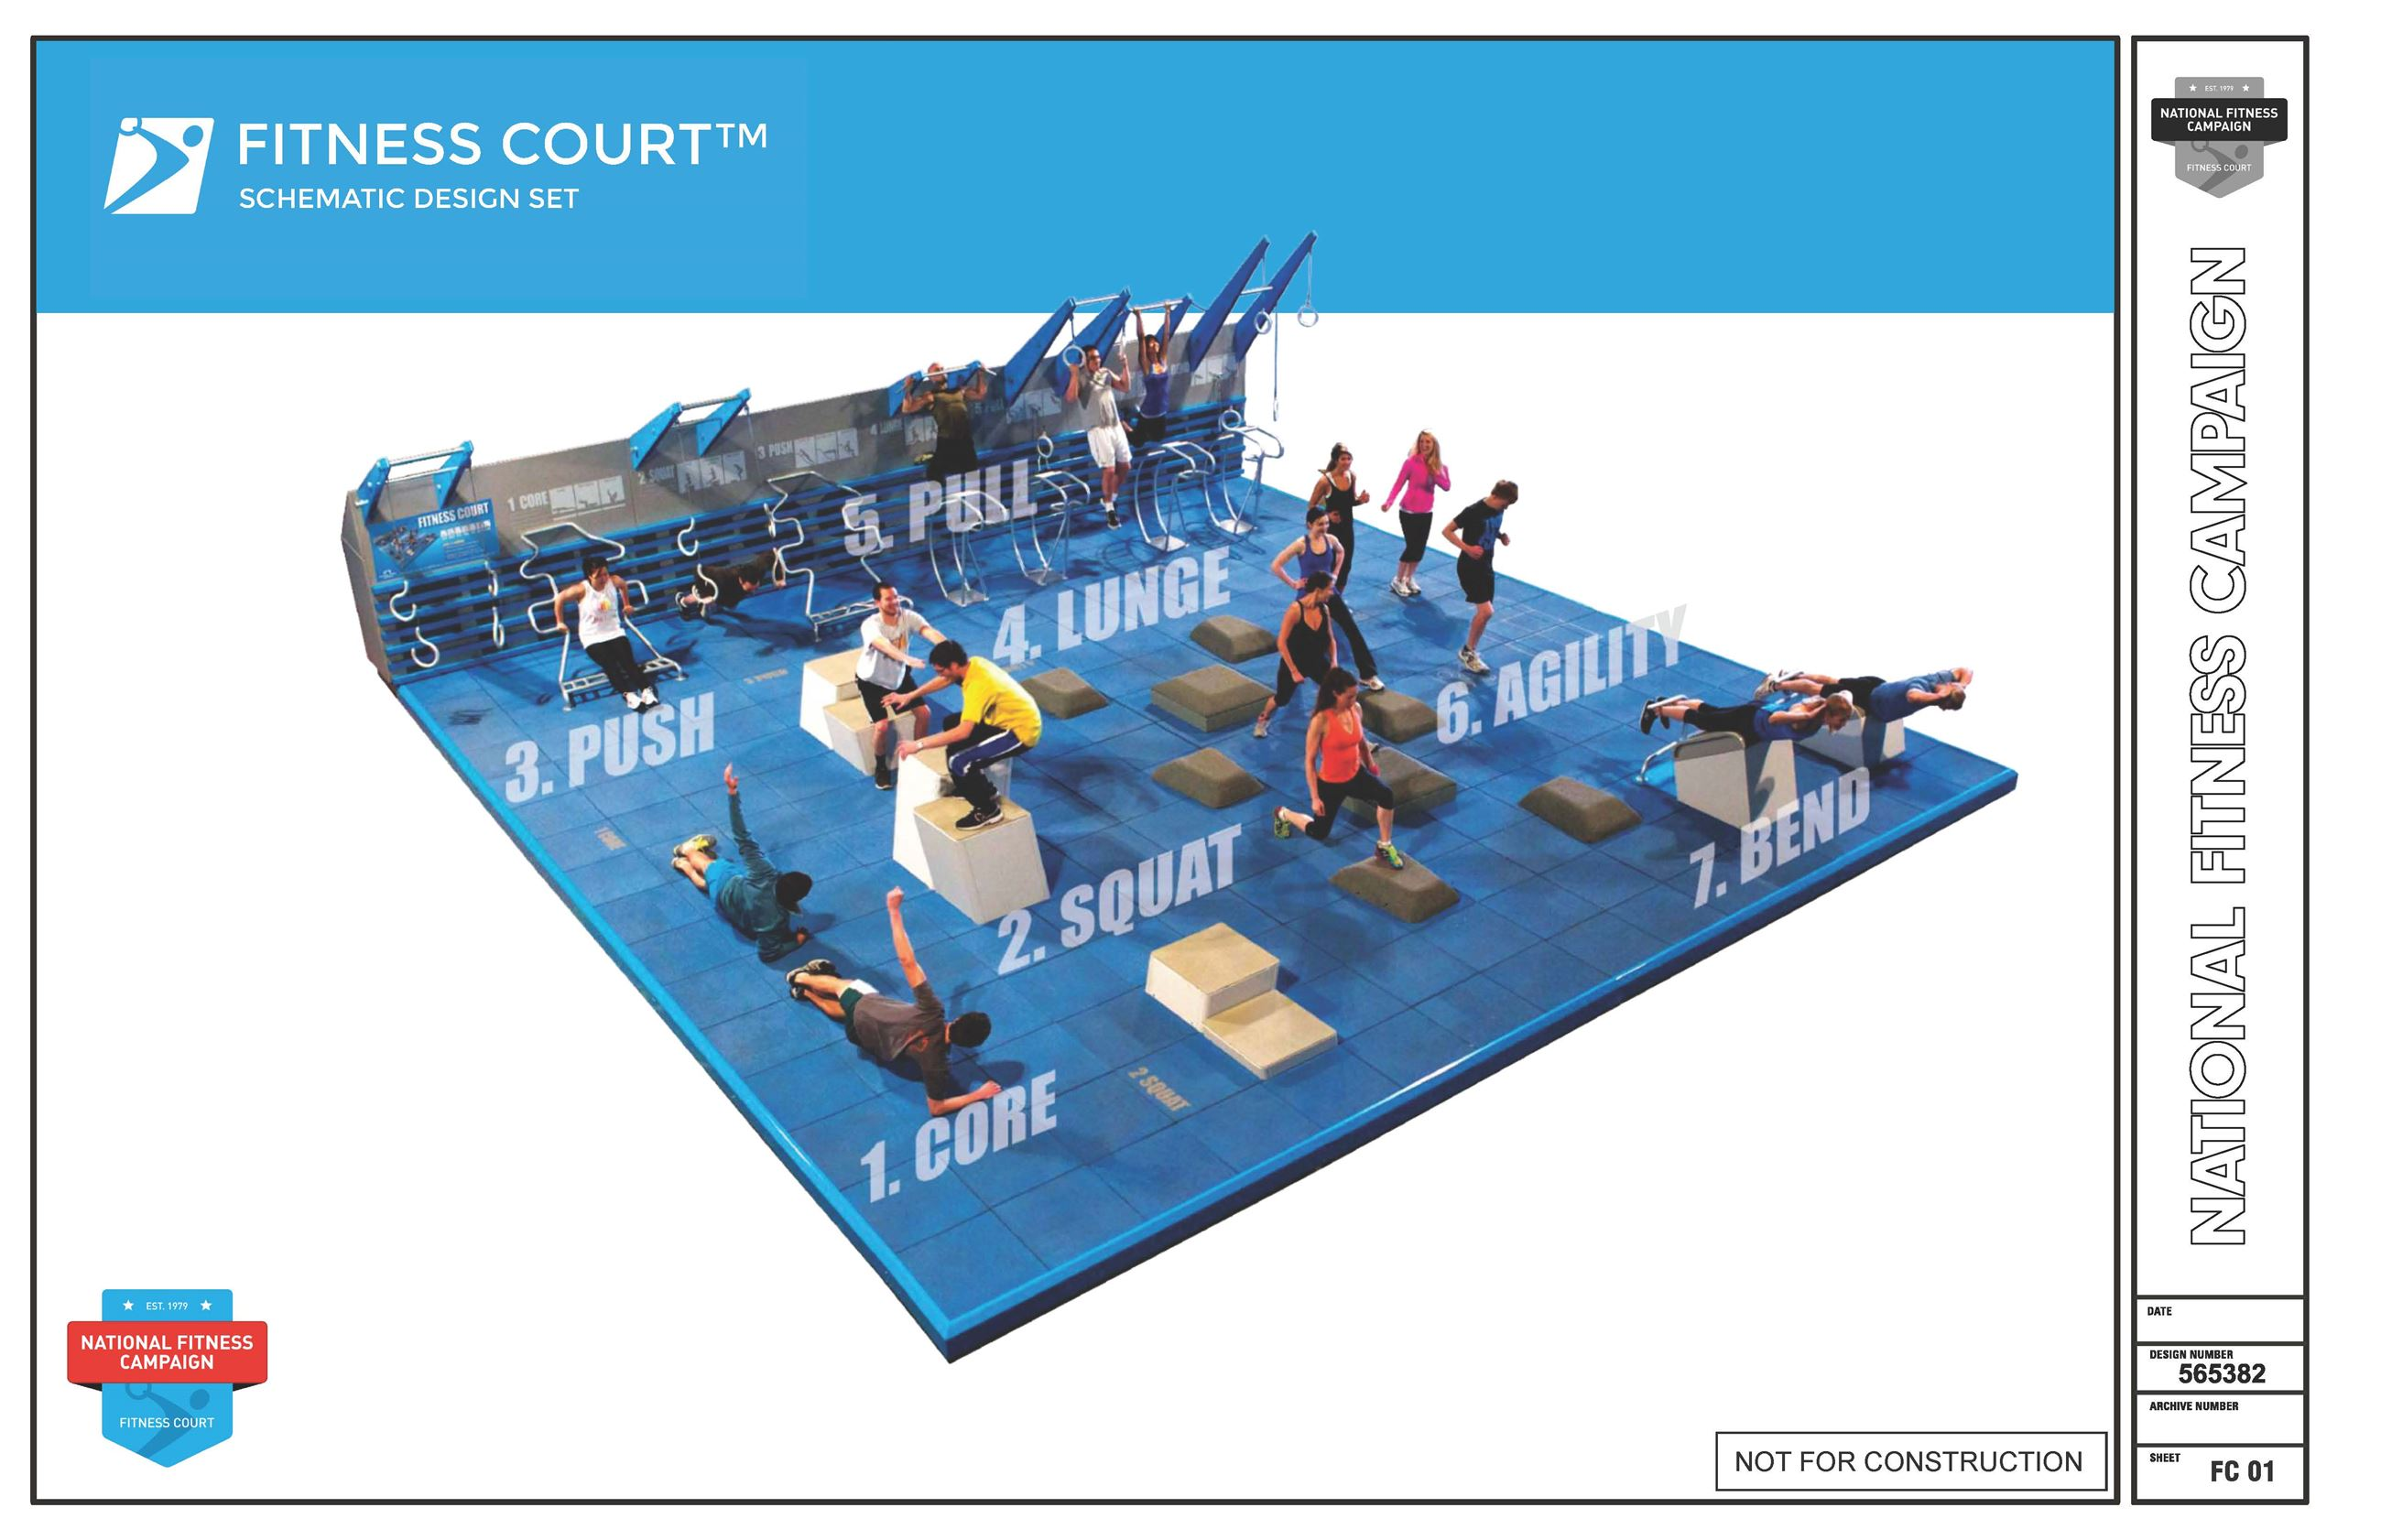 National Fitness Campaign Fitness Court Schematic